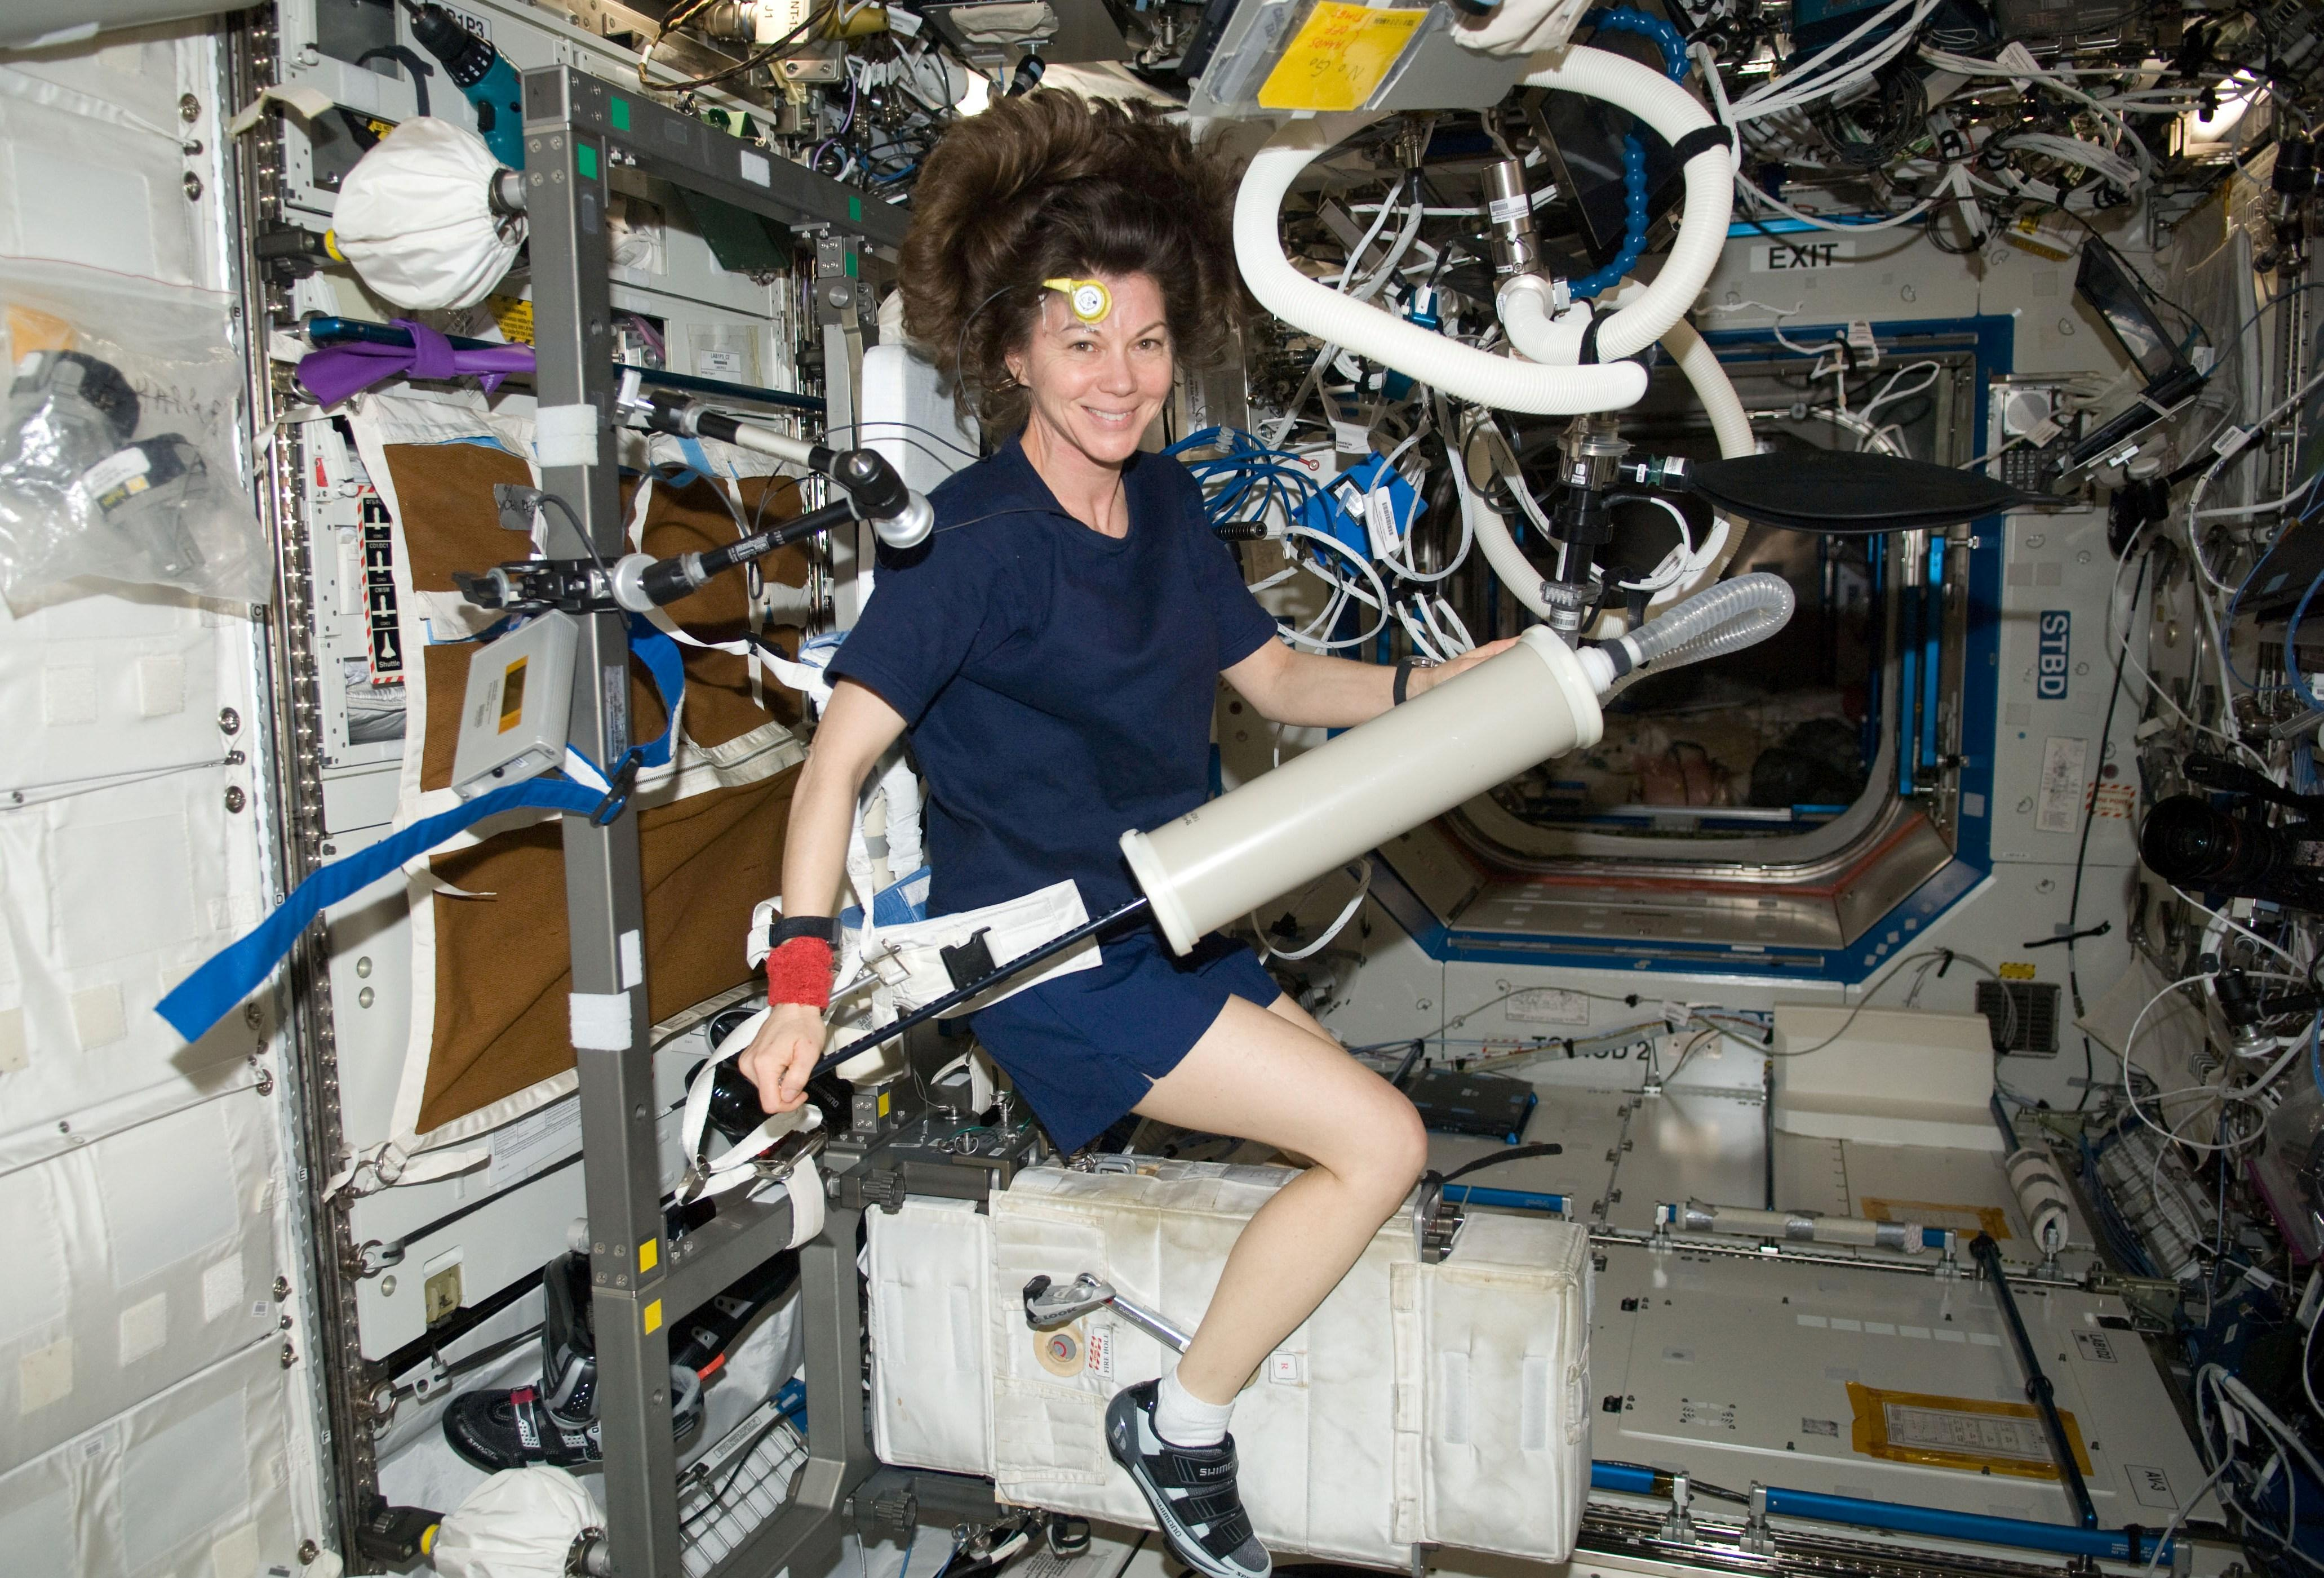 supply oxygen for astronauts - photo #25